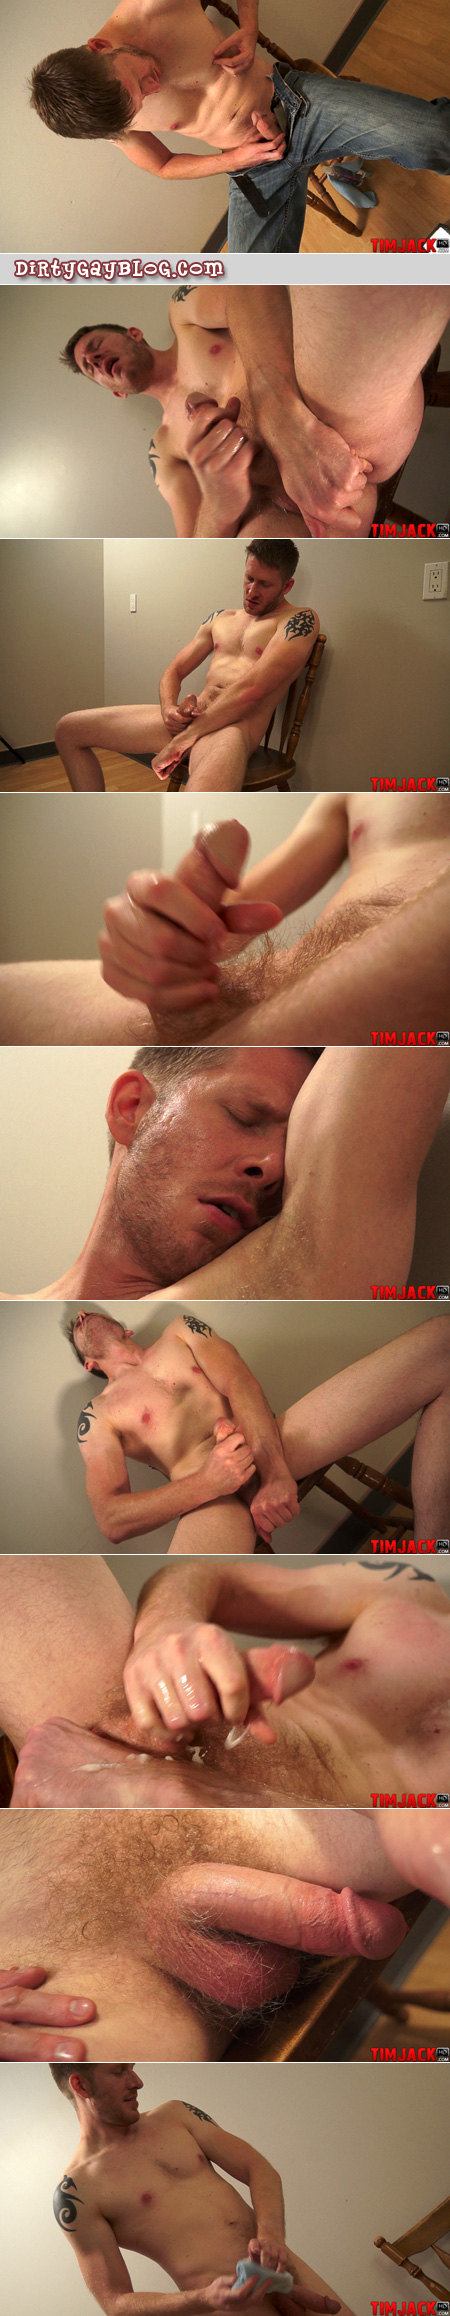 Dirty blonde scruff guy jacking off sniffs his armpits and eats his own cum.